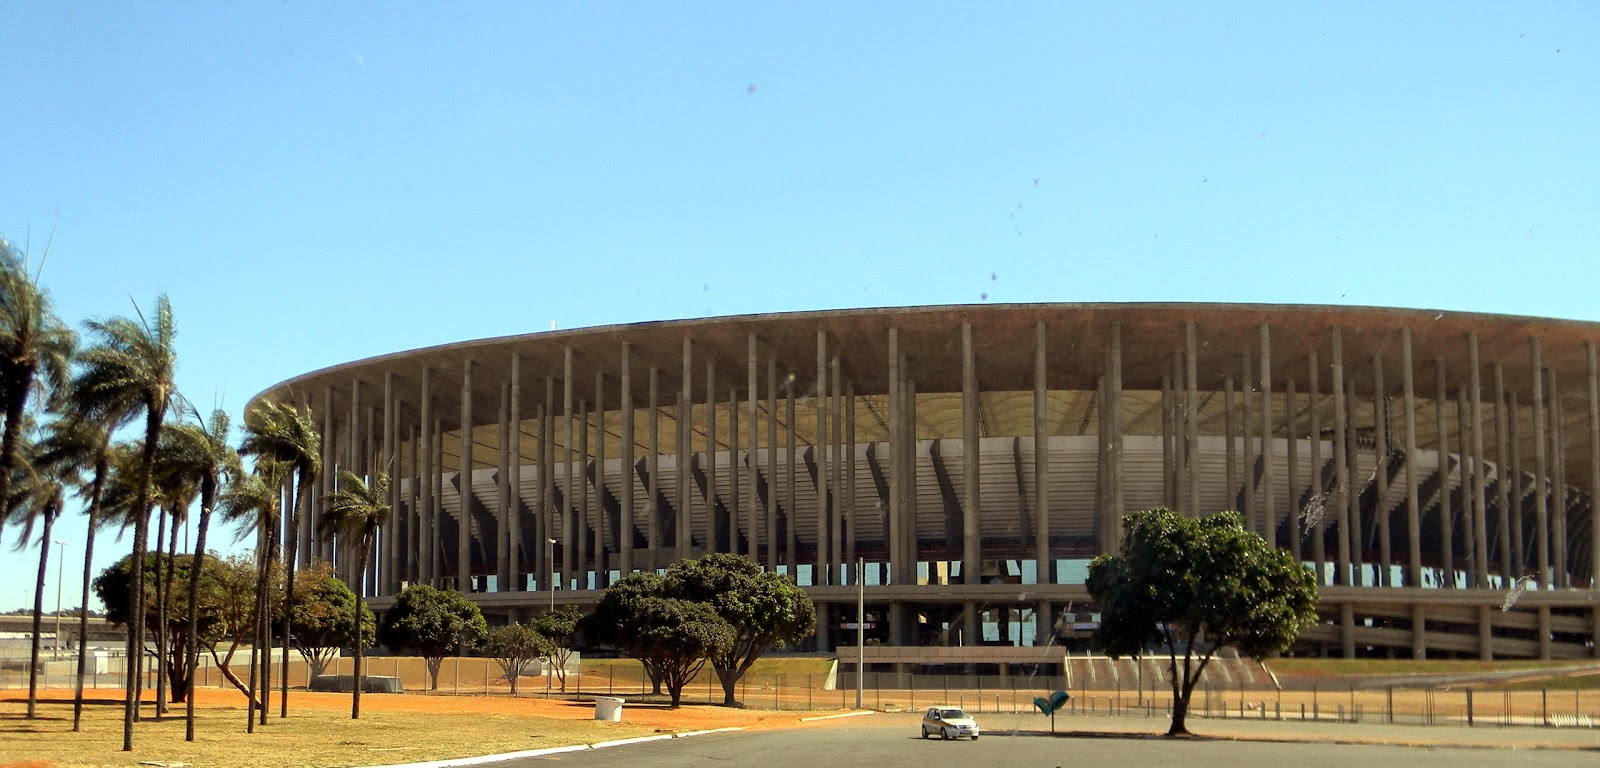 Brasilia Estadio Mané Garrincha